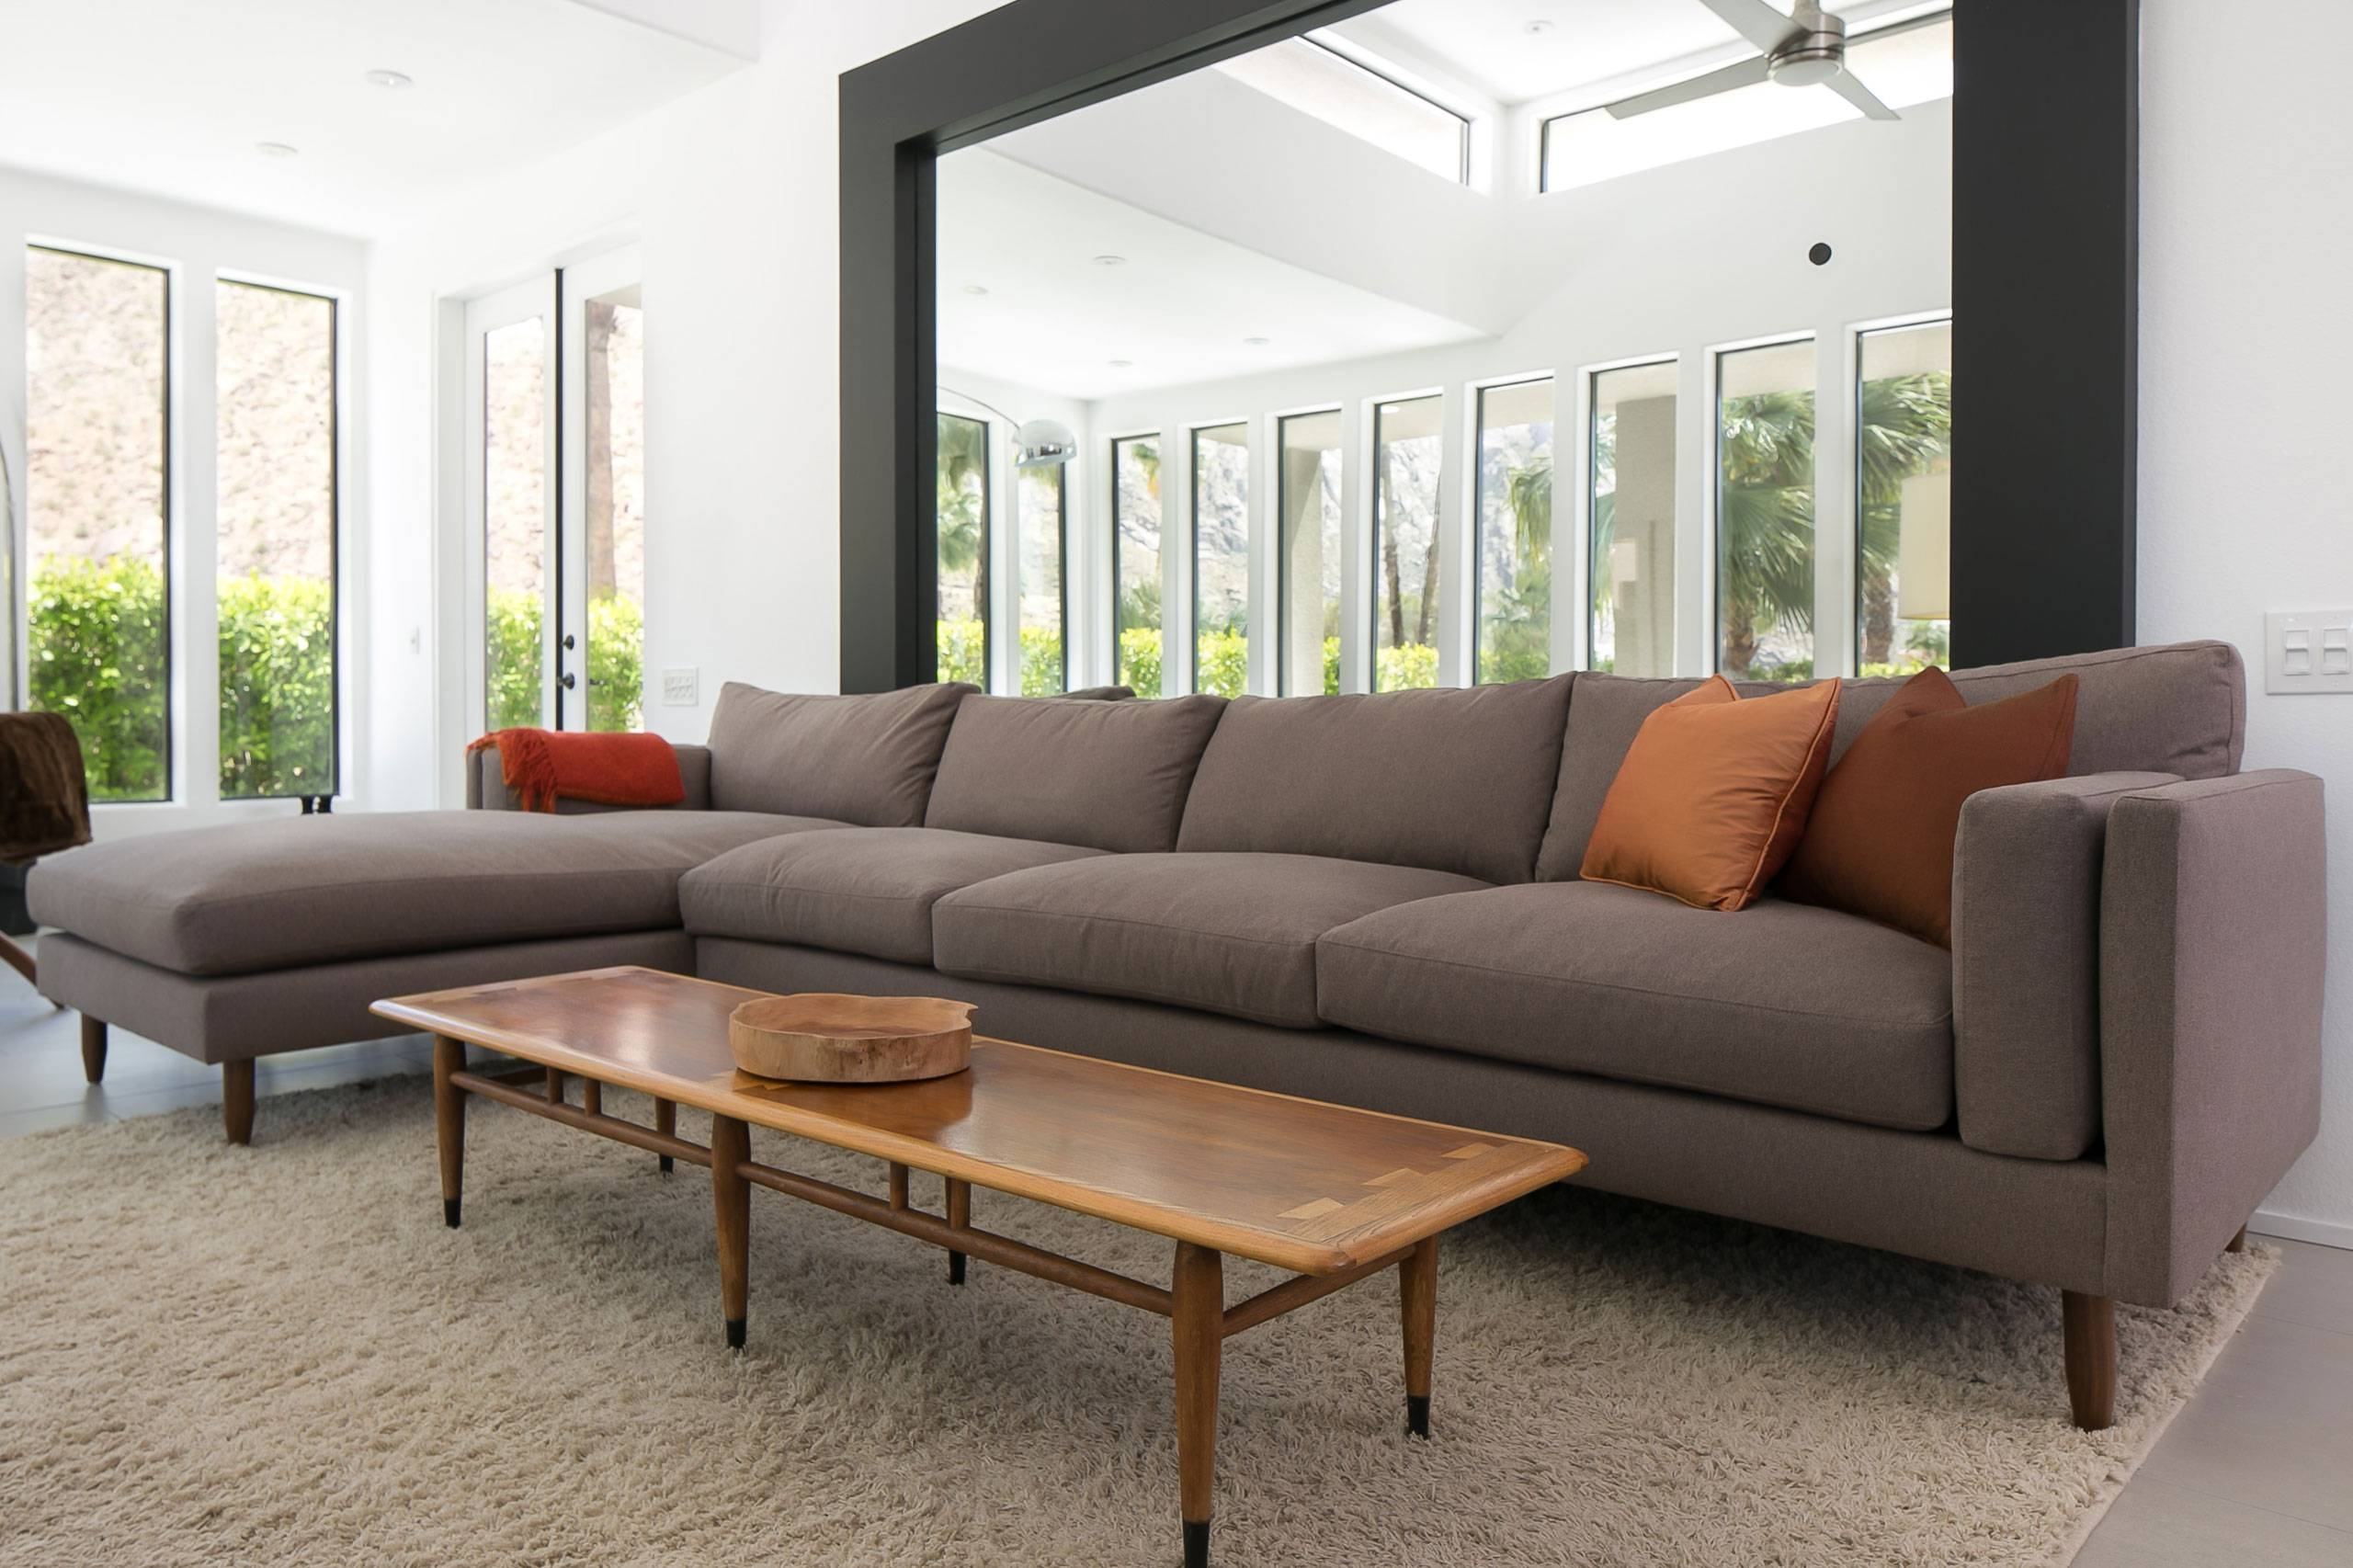 Custom Sized Modern Sofas - Benchmade Modern with regard to American Made Sectional Sofas (Image 11 of 30)